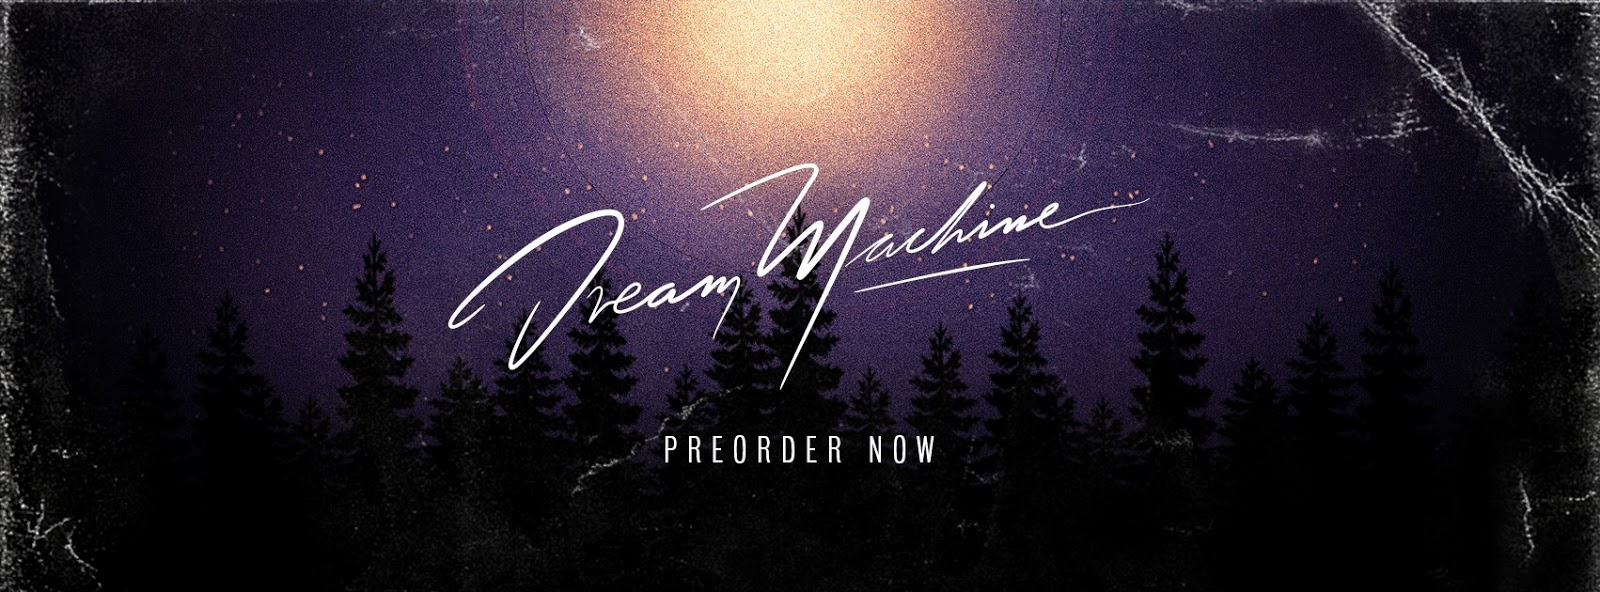 machine new album 2017